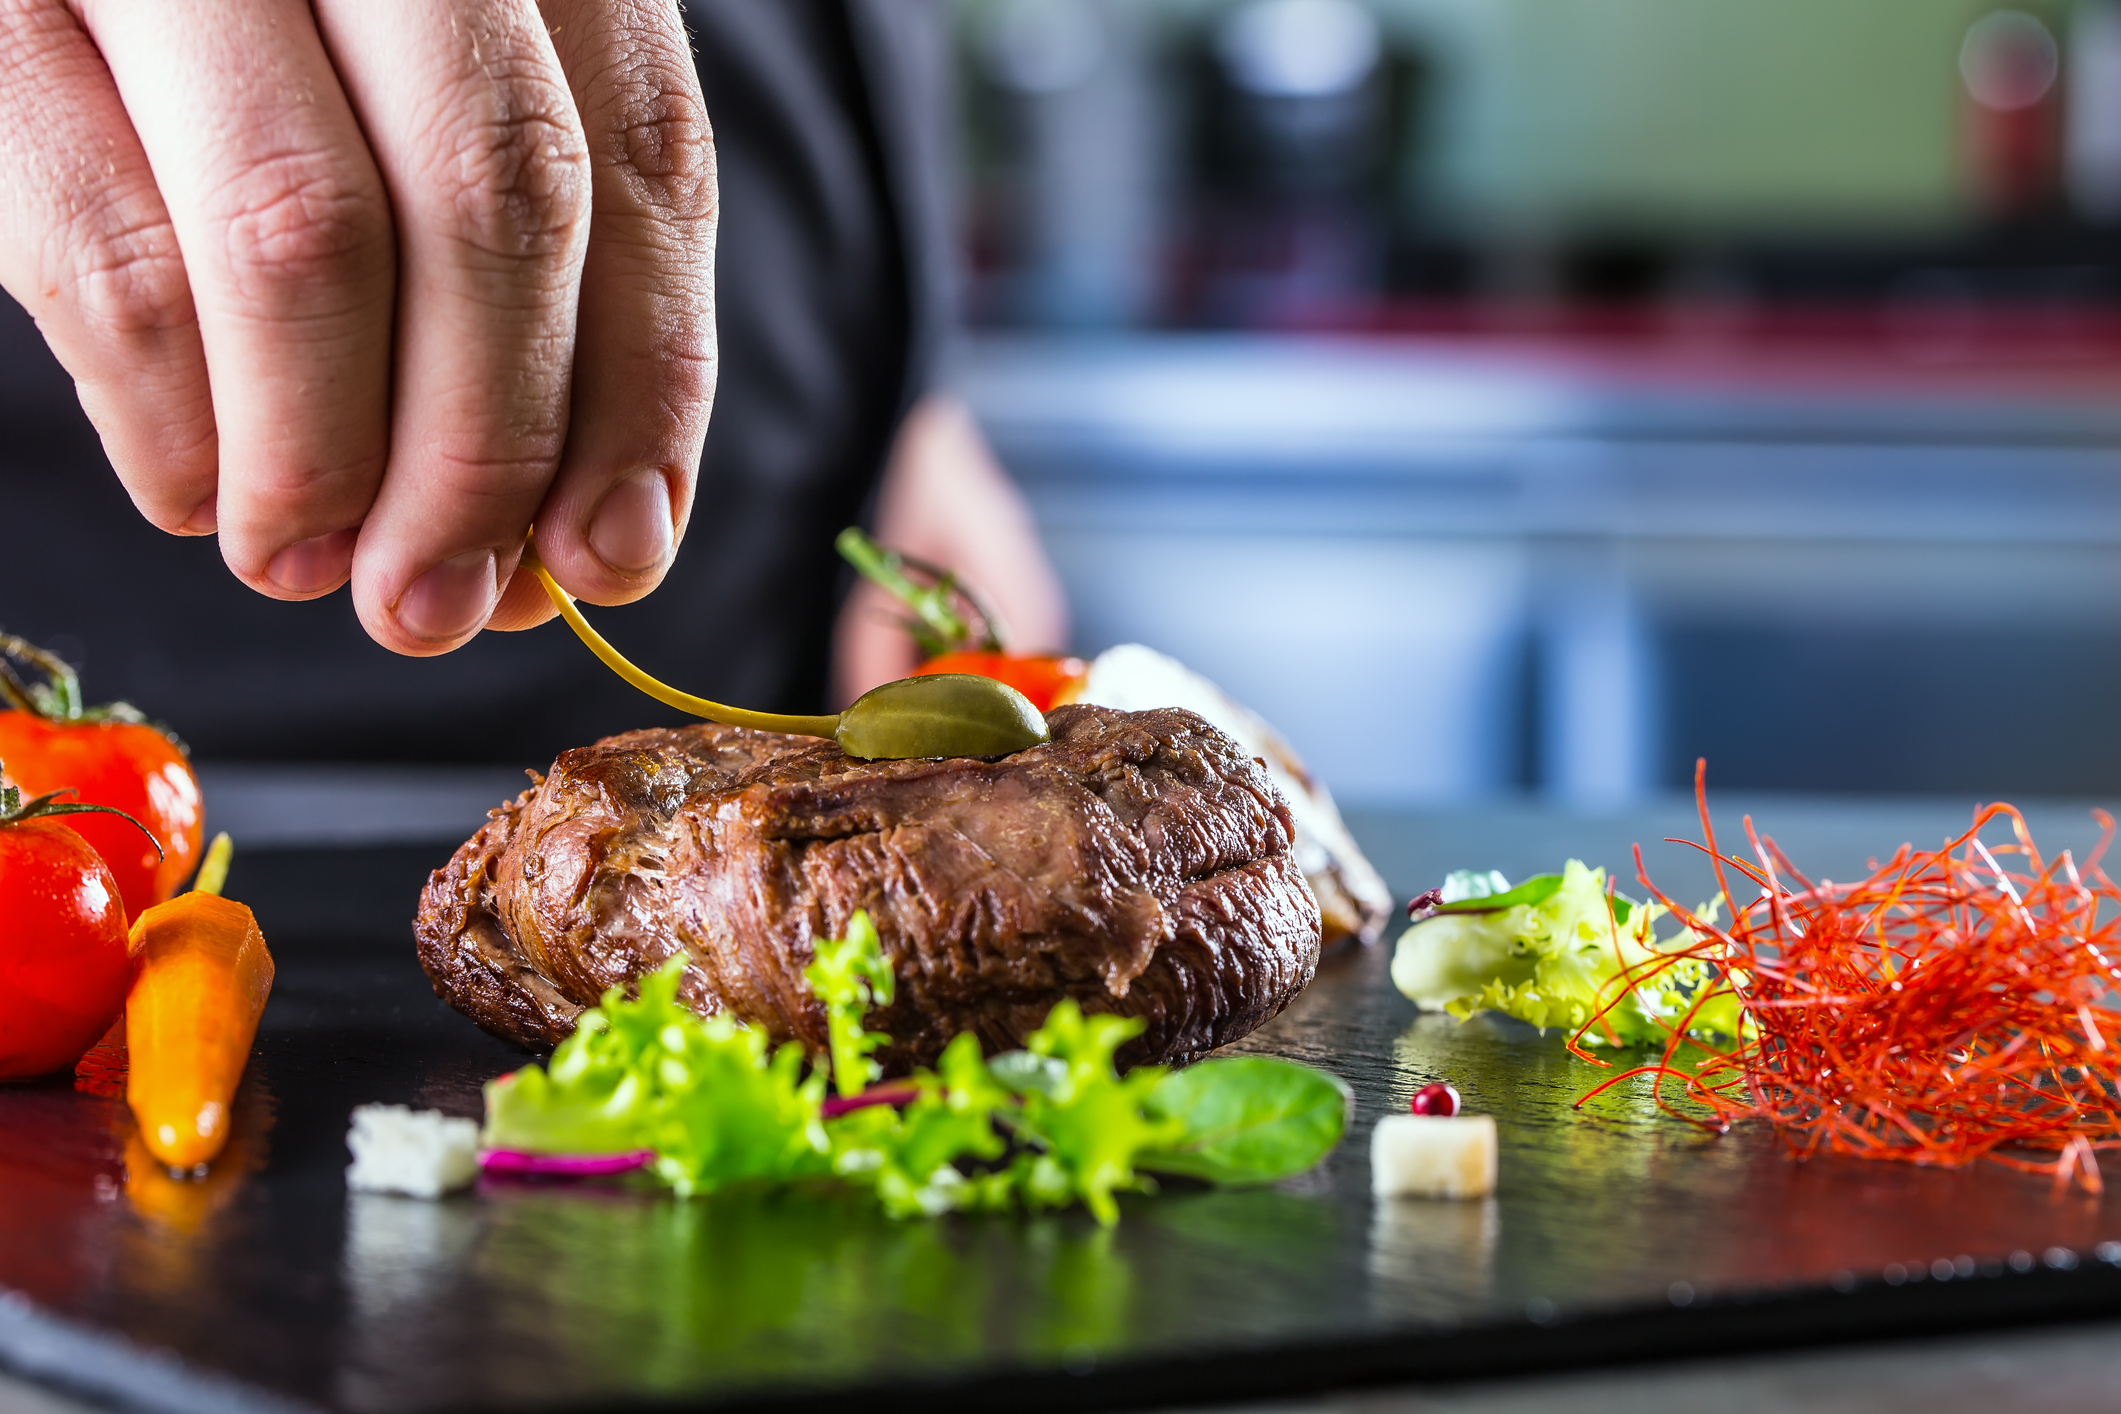 Comment cuire un steak à la perfection comme au restaurant ?